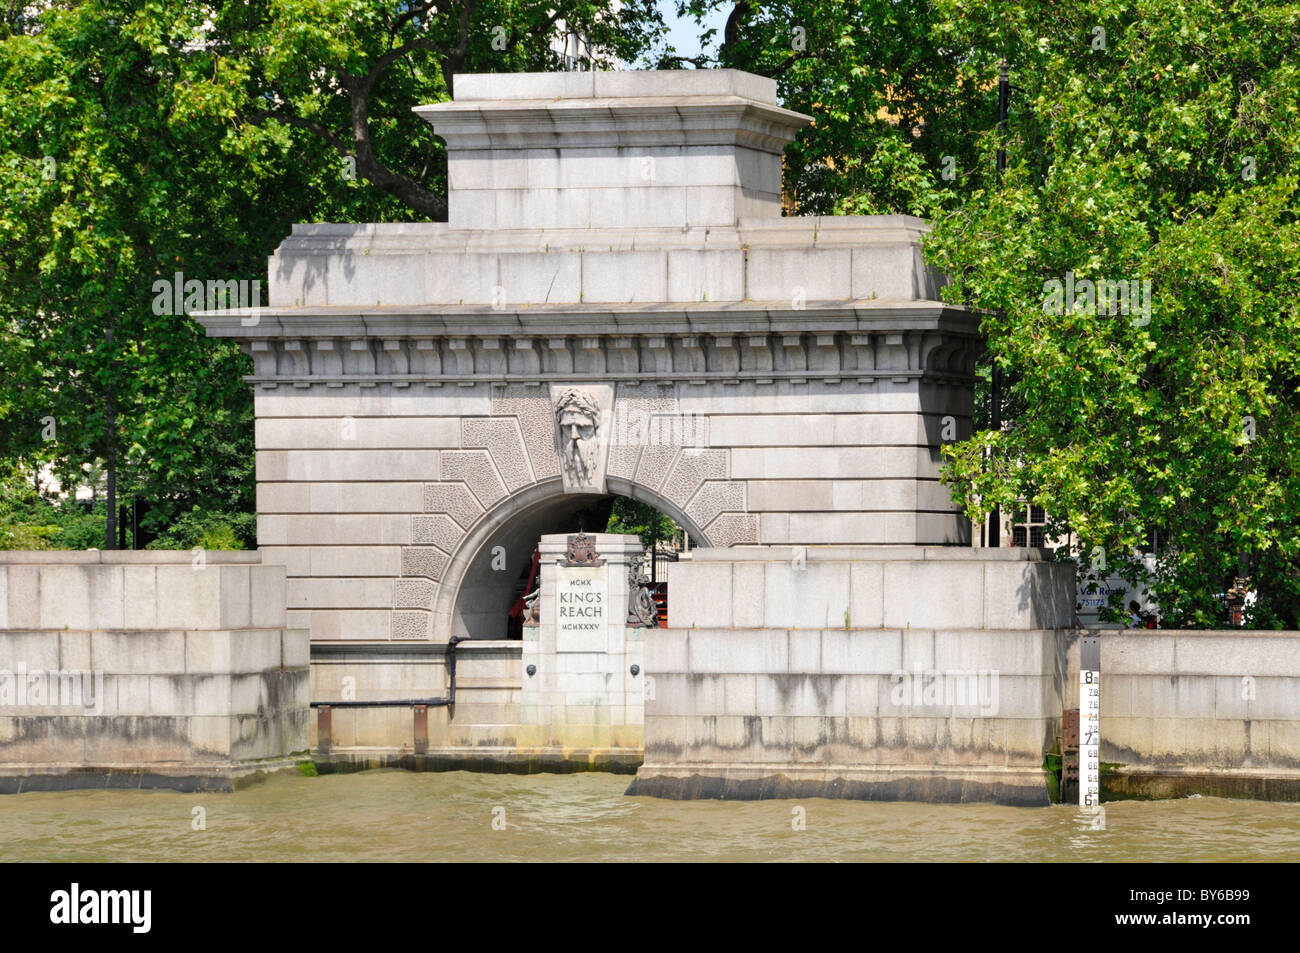 Old Kings Reach Watergate to commemorate Silver Jubilee of King George V on London embankment River Thames note - Stock Image